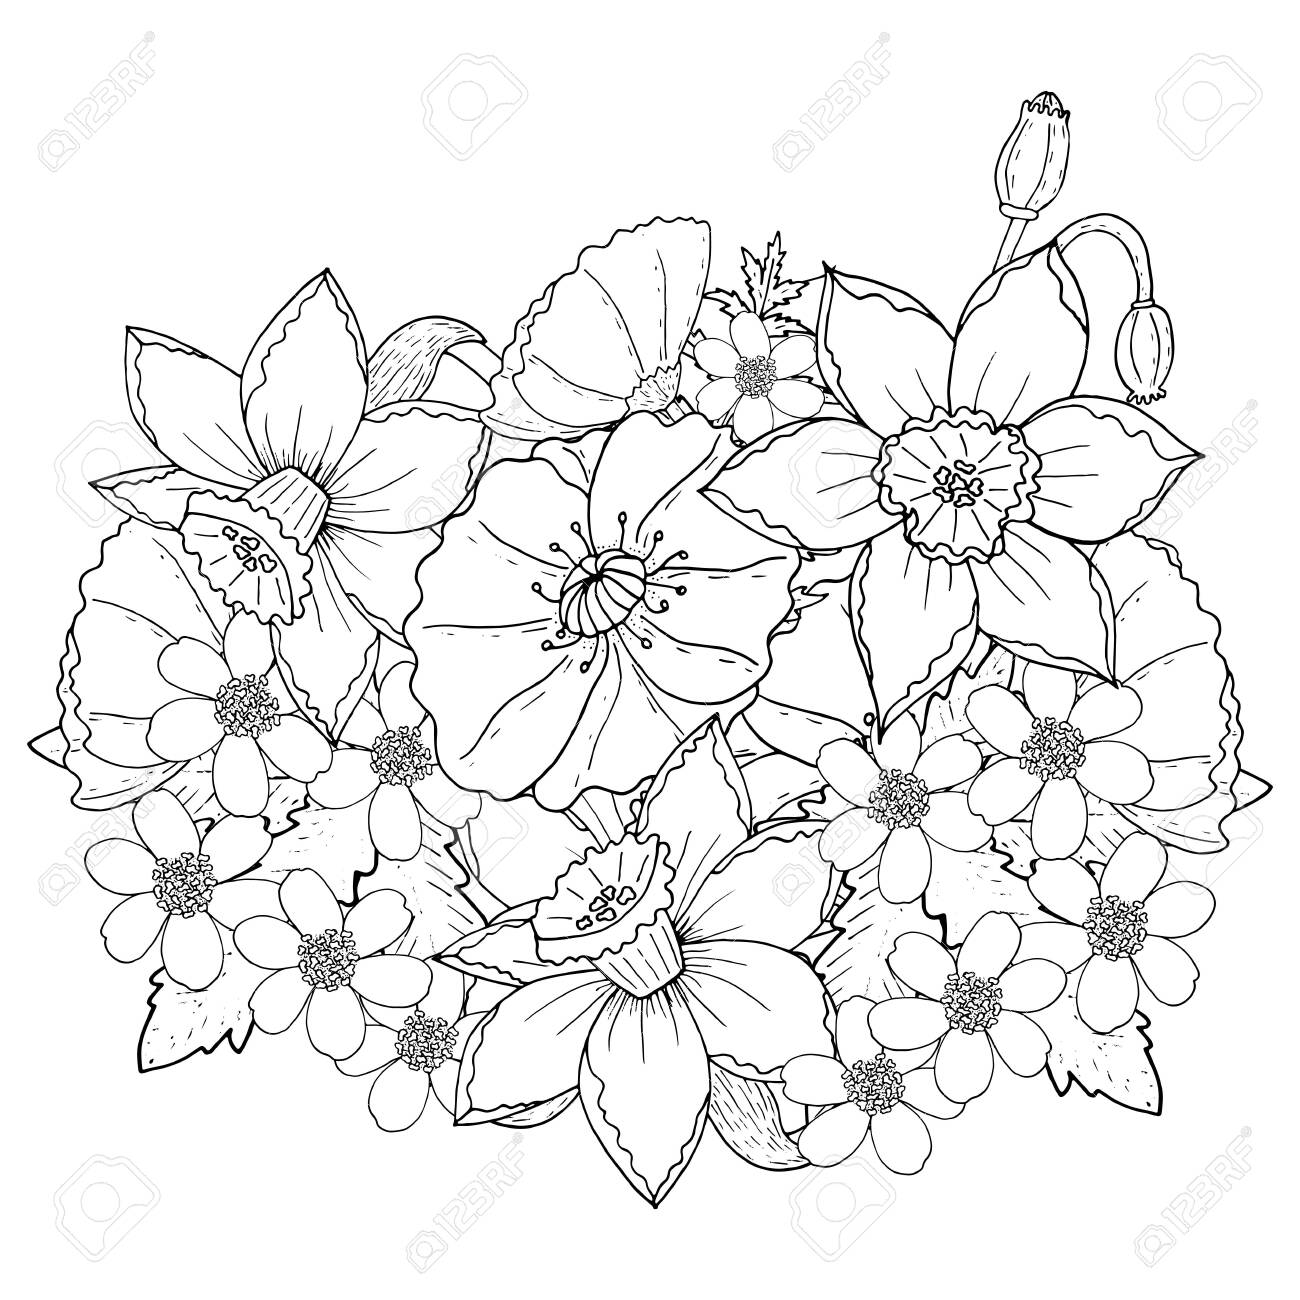 graphic about Poppy Printable named Floral template with Poppy and narcissus. Printable coloring..